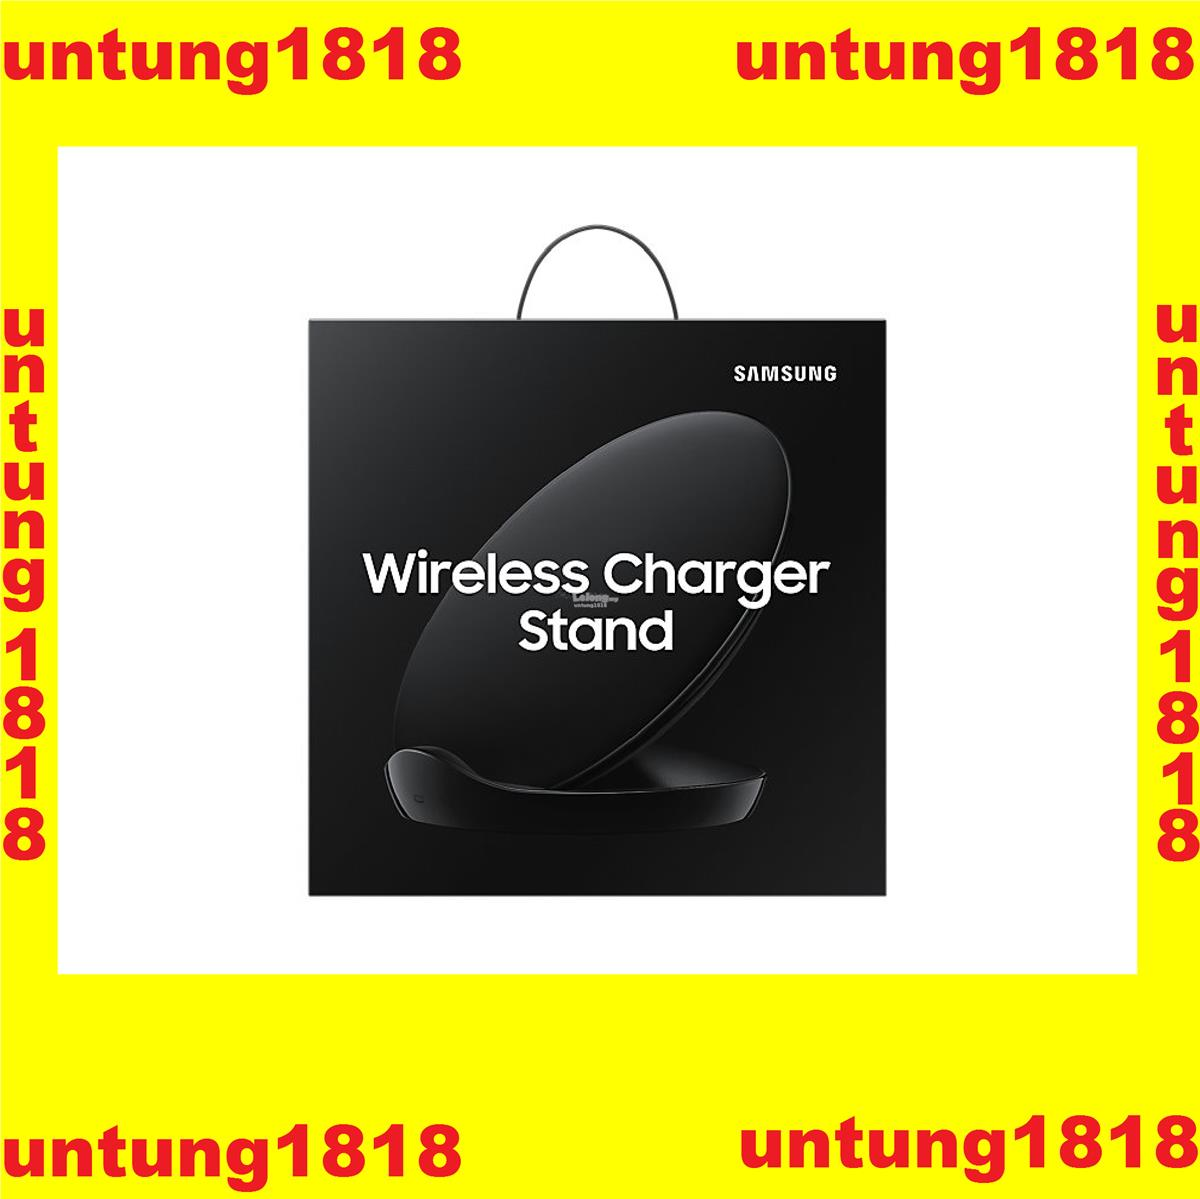 Original Samsung Malaysia.Original NEW Samsung Wireless Charger Stand